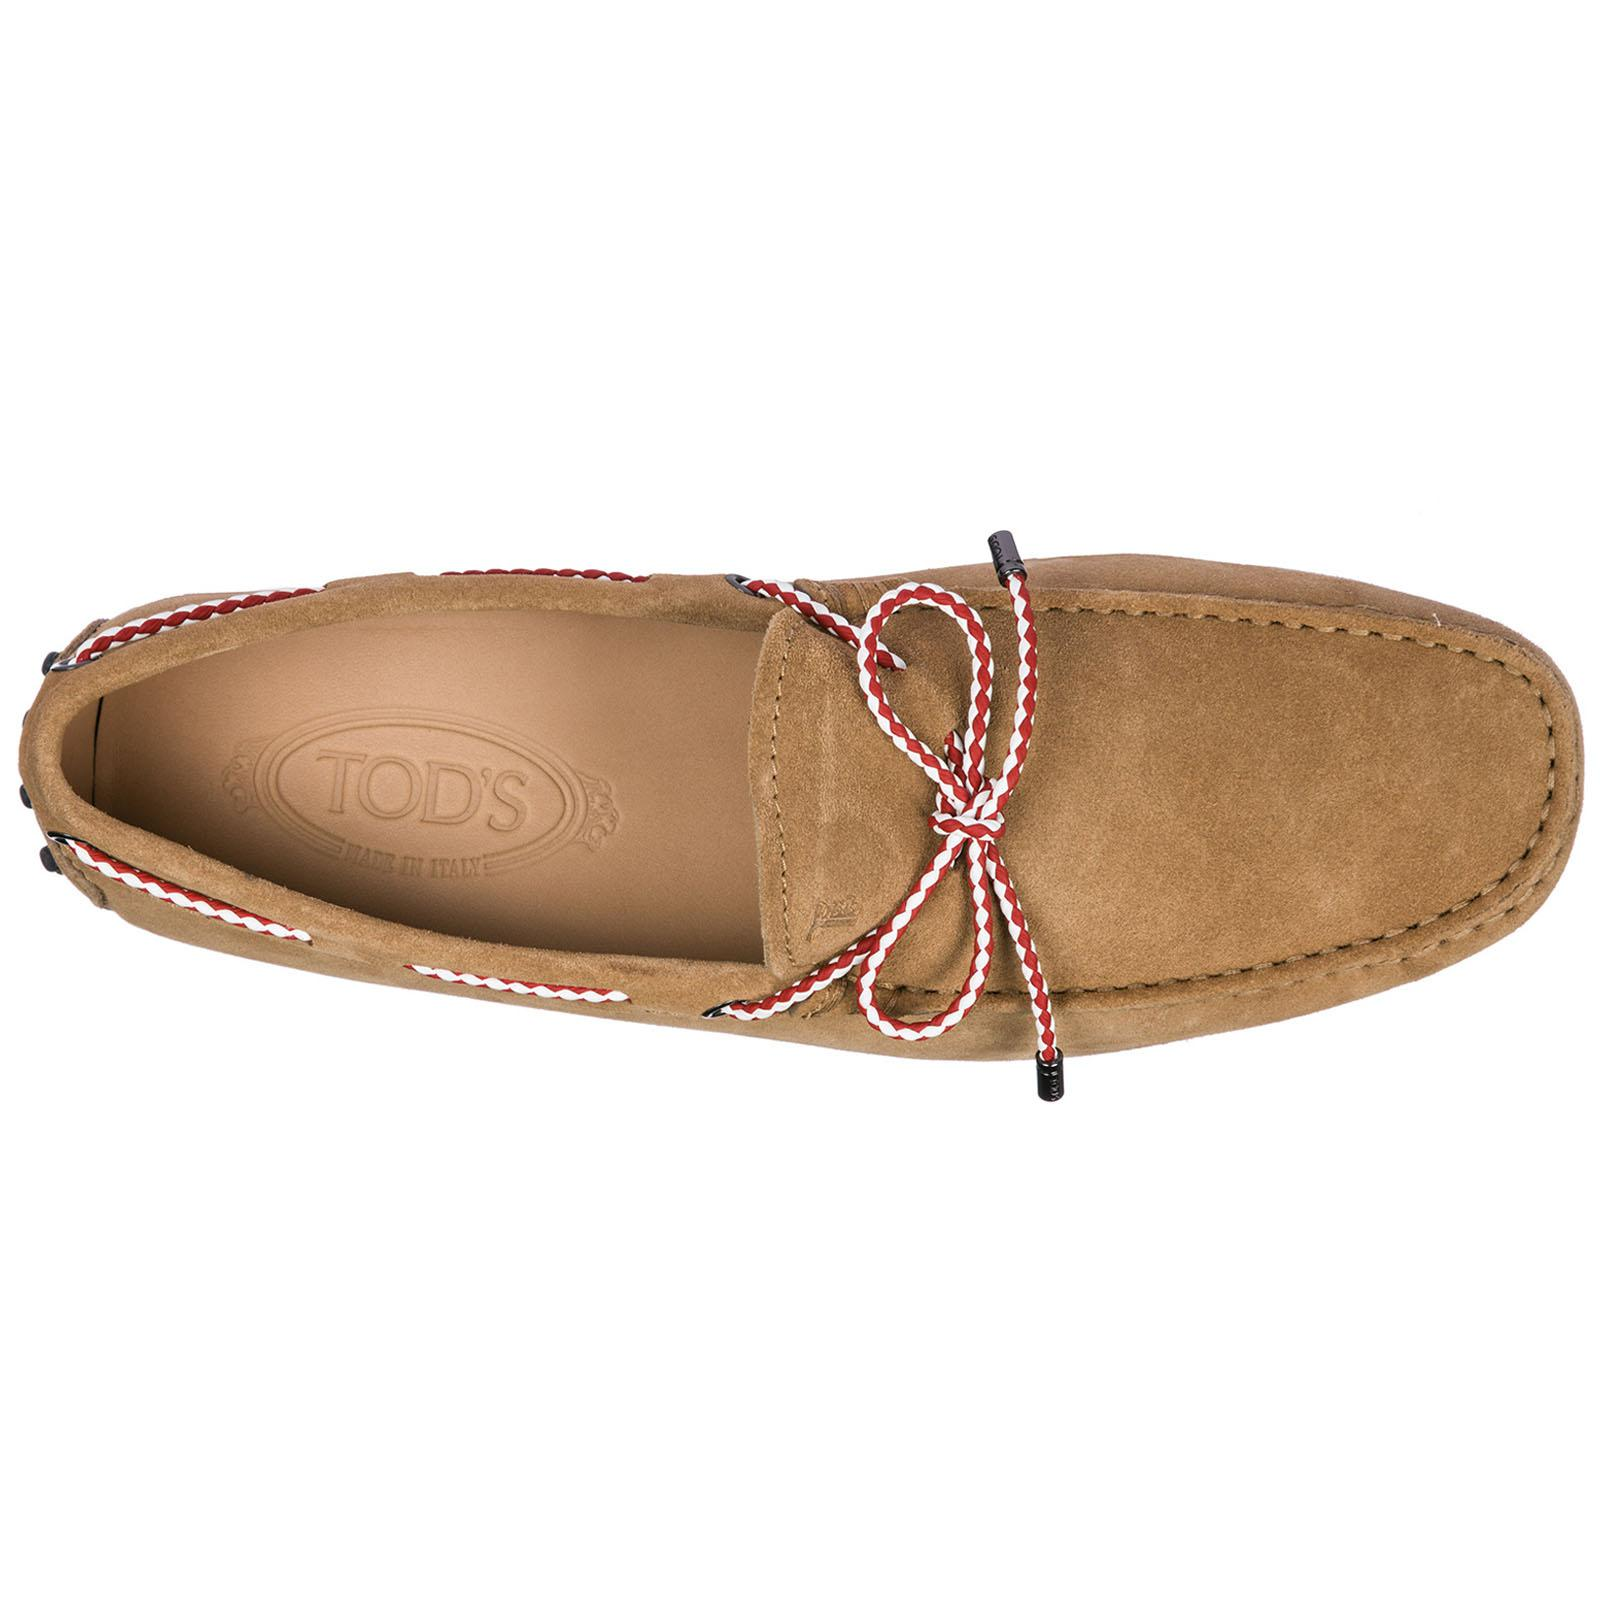 9ef712809a3 ... Suede Loafers Moccasins Gommini 122 Mycolors for Men - Lyst. View  fullscreen